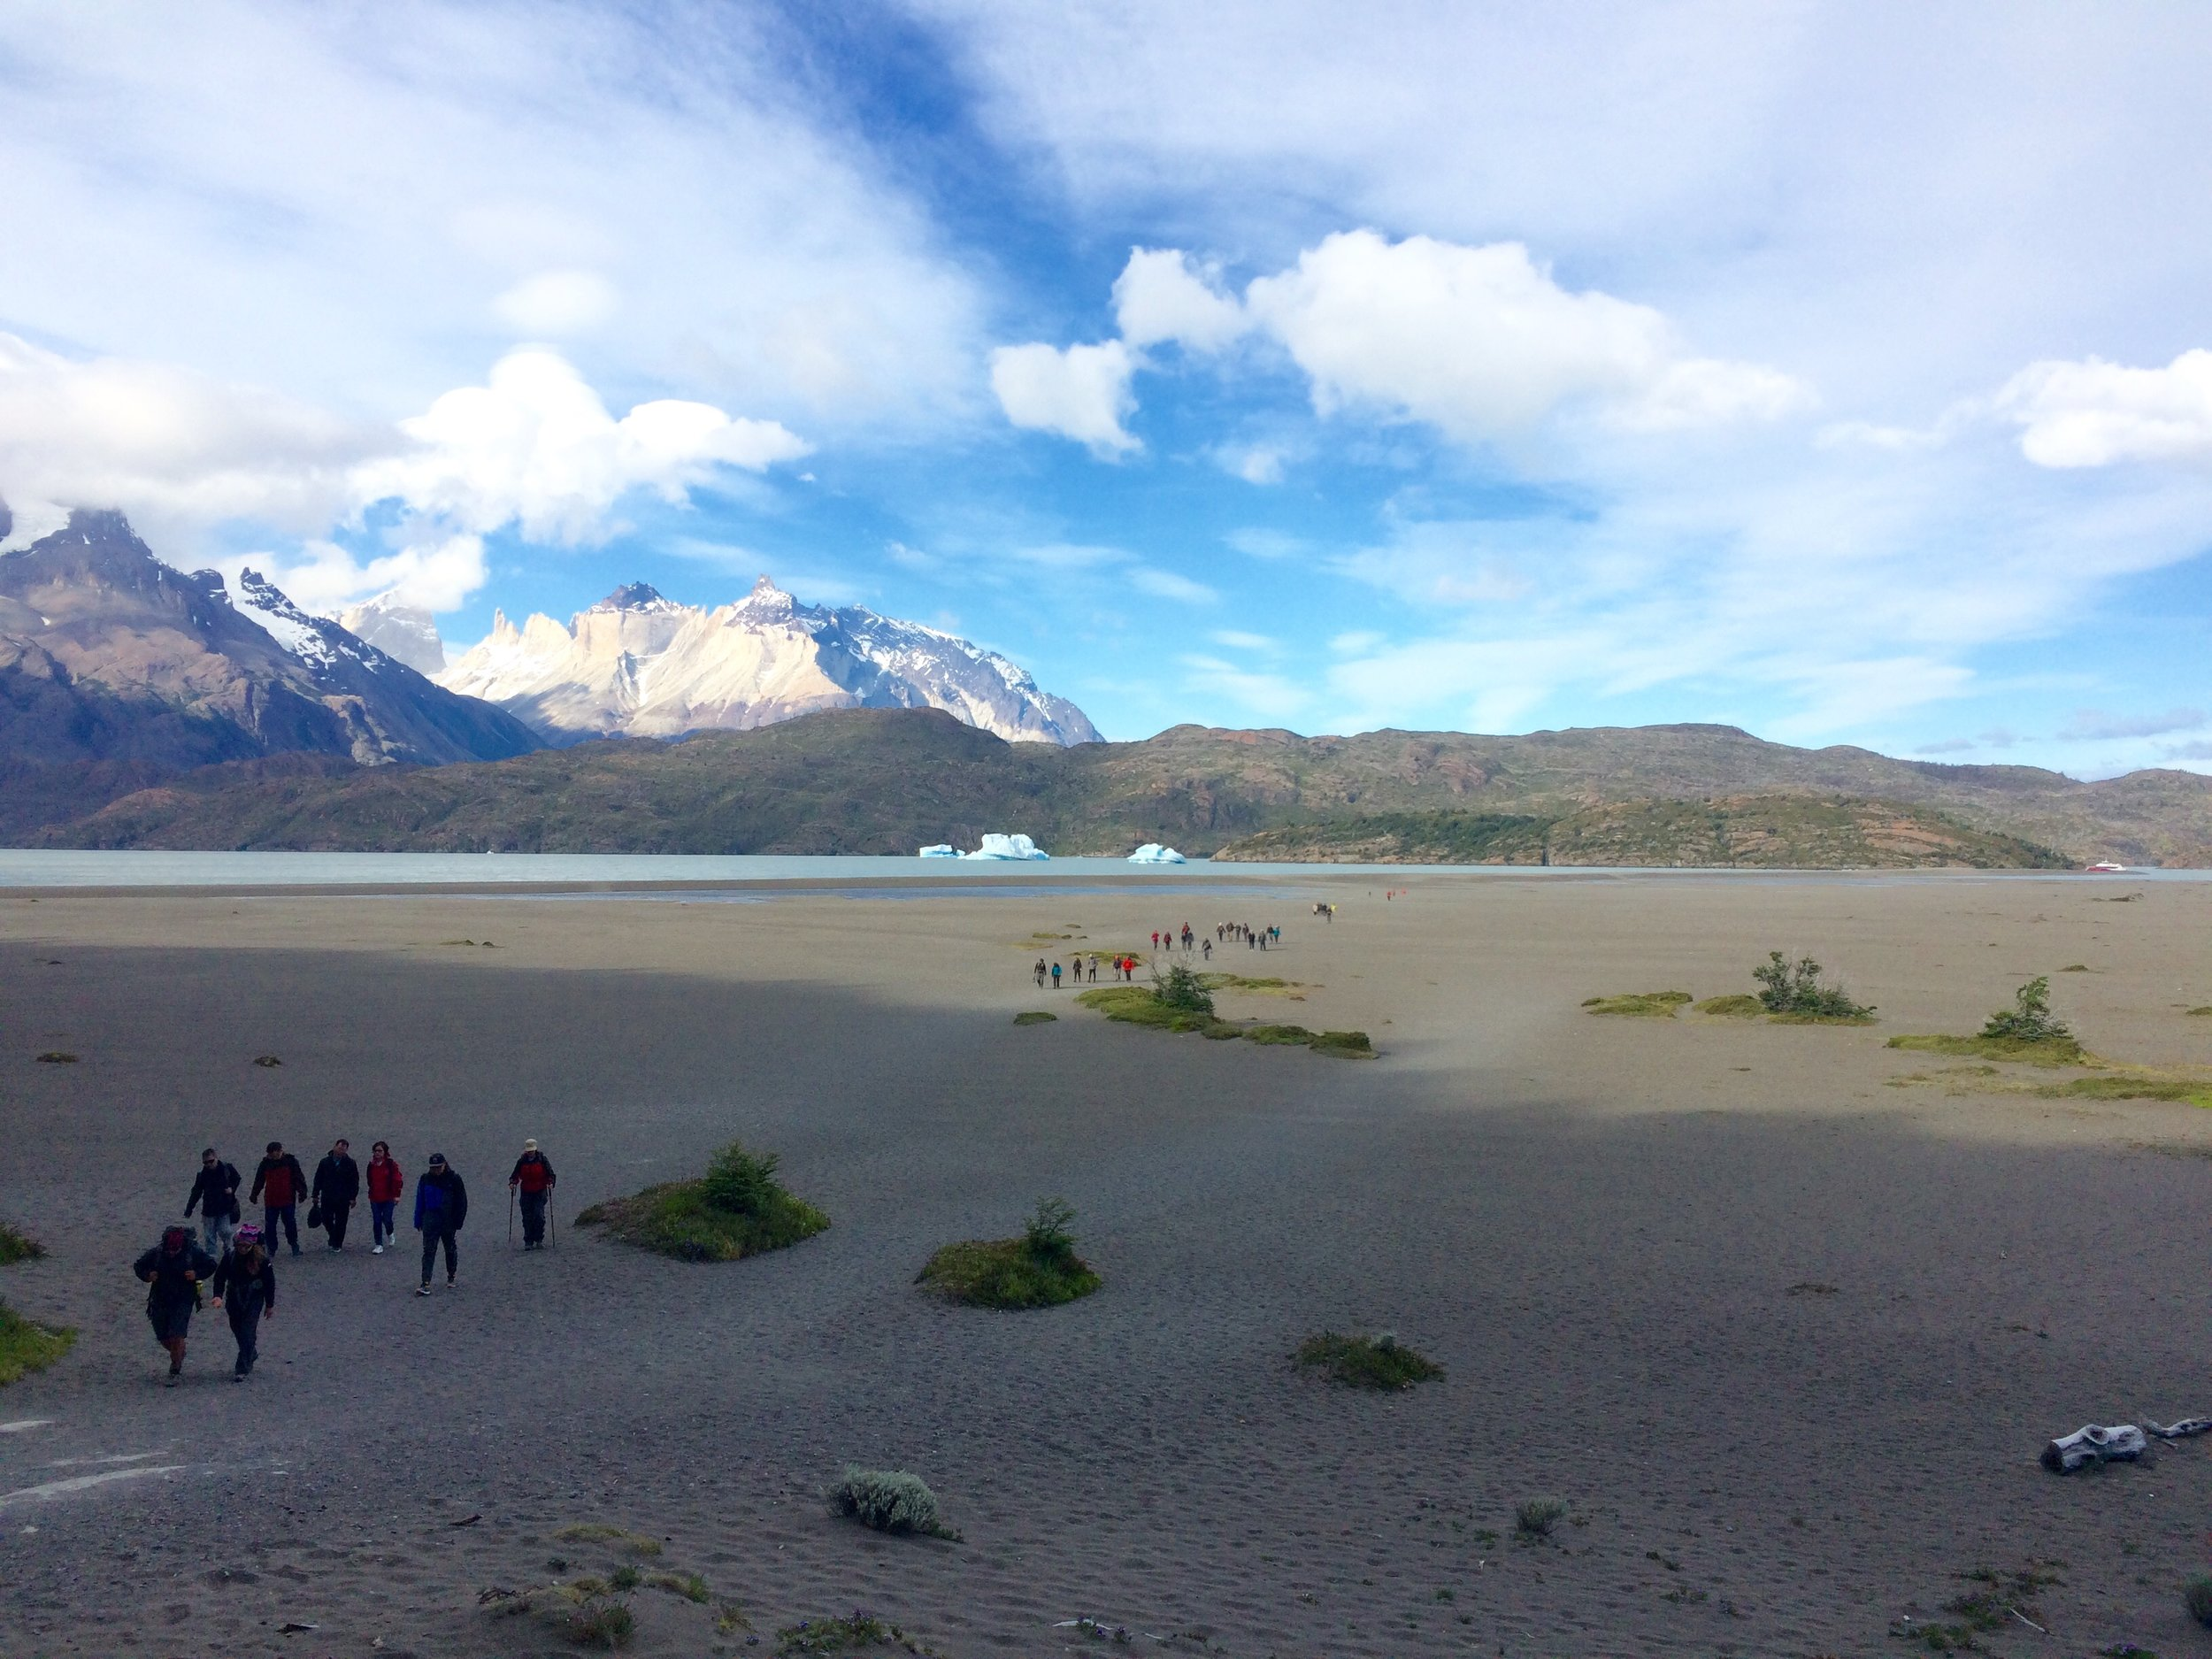 Ain't no mountain high enough: flash back Friday to my 5 weeks in Patagonia (November-December of 2017) where I had plenty of time to exercise, unwind, and engage in meaningful social interaction- all very important for brain health!